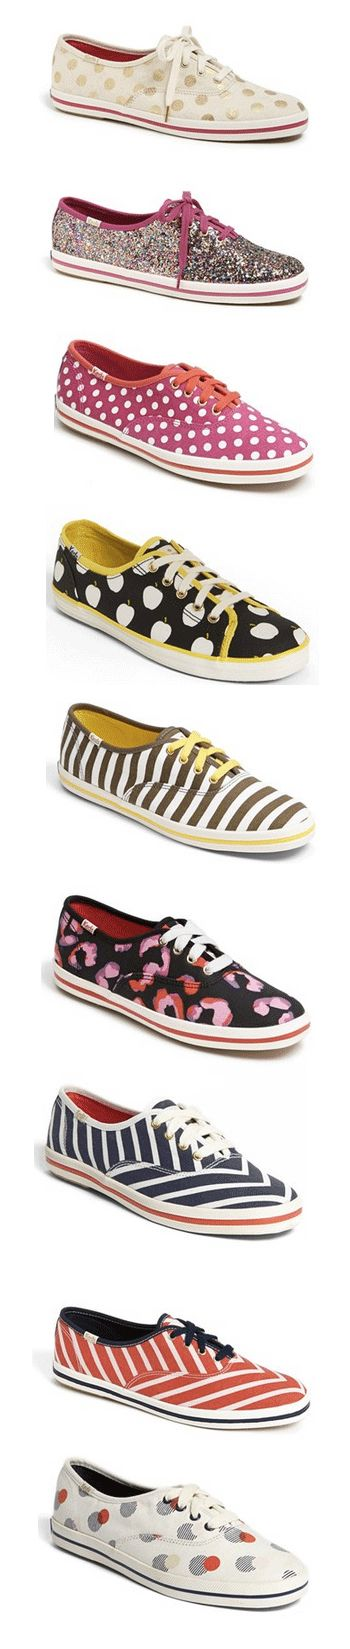 Keds for kate spade new york - so many pretty designs!  Which one is your favorite?  http://rstyle.me/n/btvchnyg6